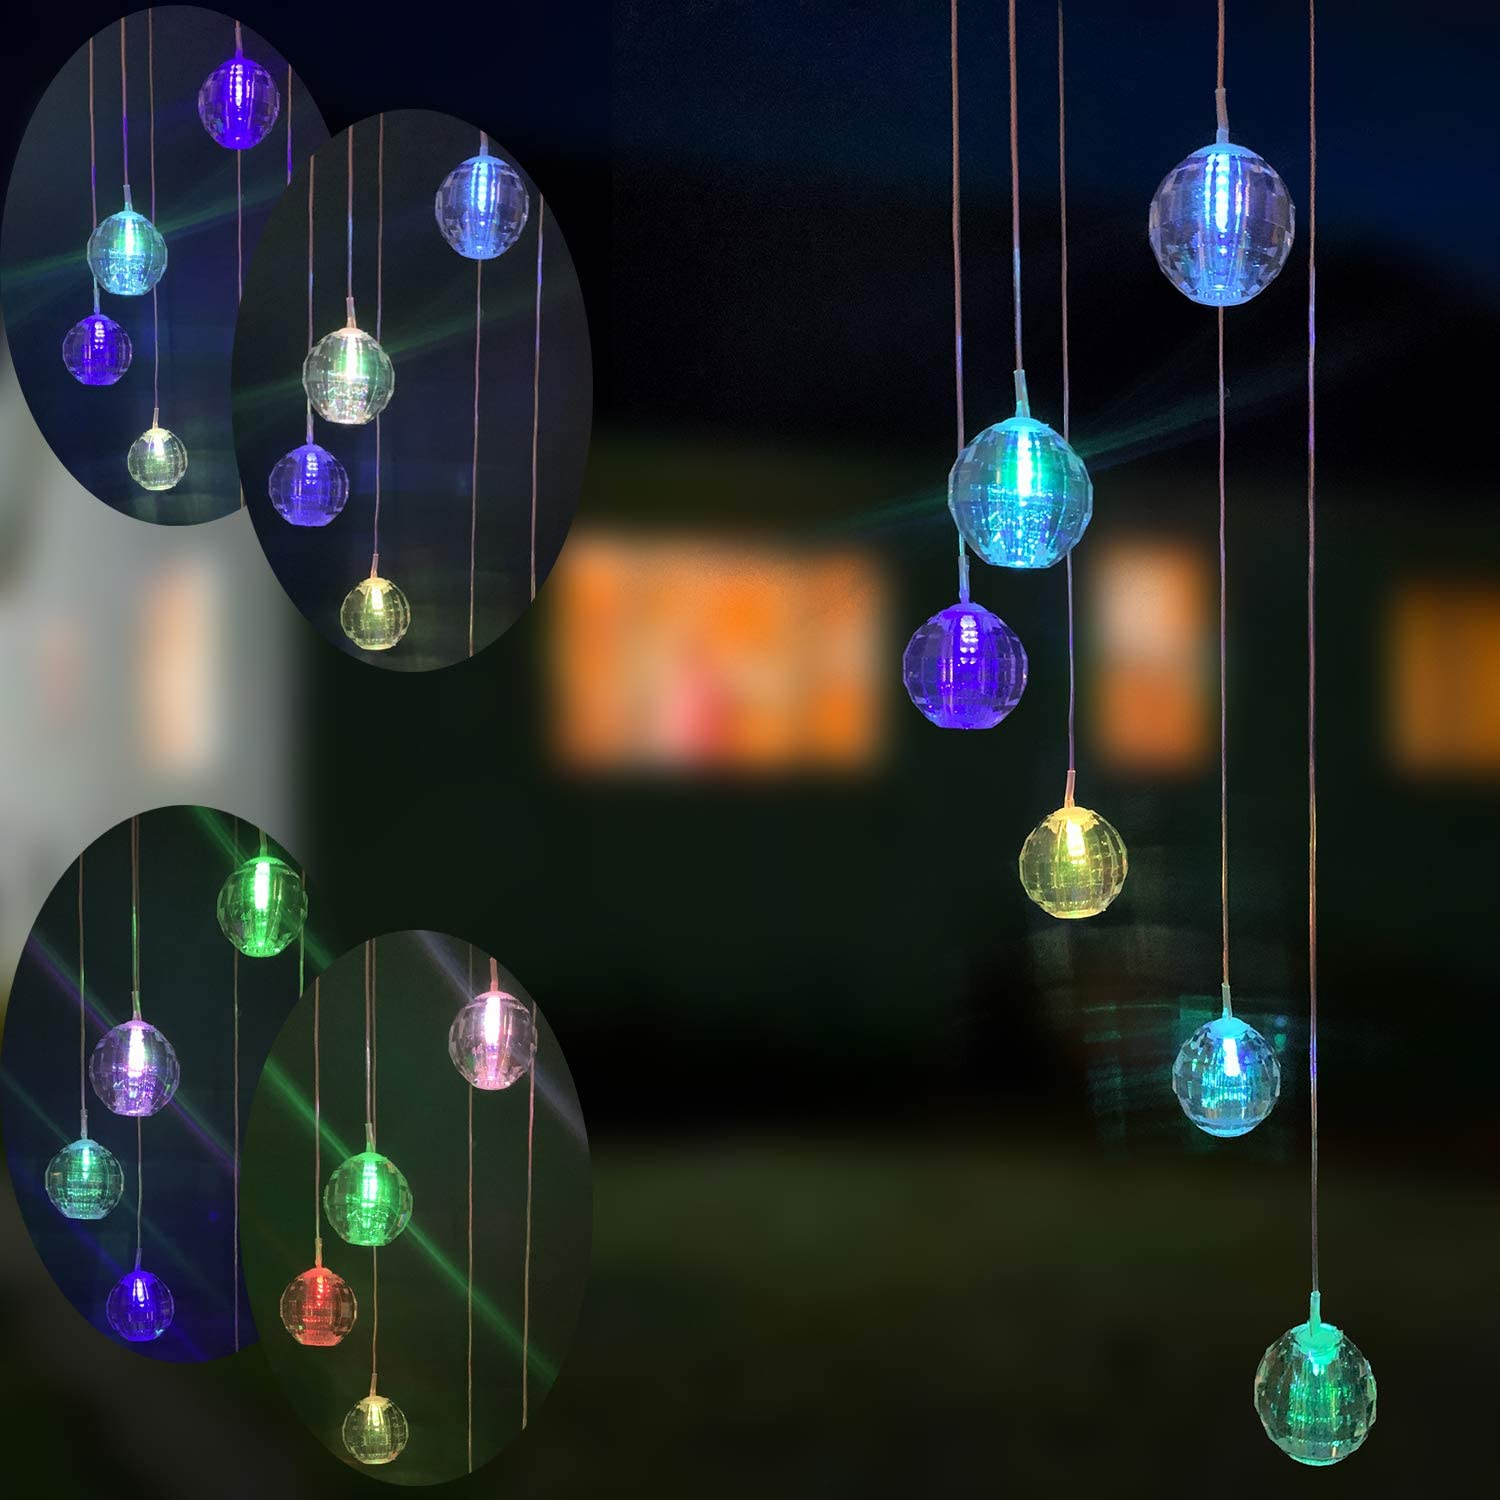 Eleven Direction Solar Wind Chimes Garden Decorations,Outside Aotu Color Changing Solar Lights,Gobile Decoration for Outdoor Lawn Patio Yard Party